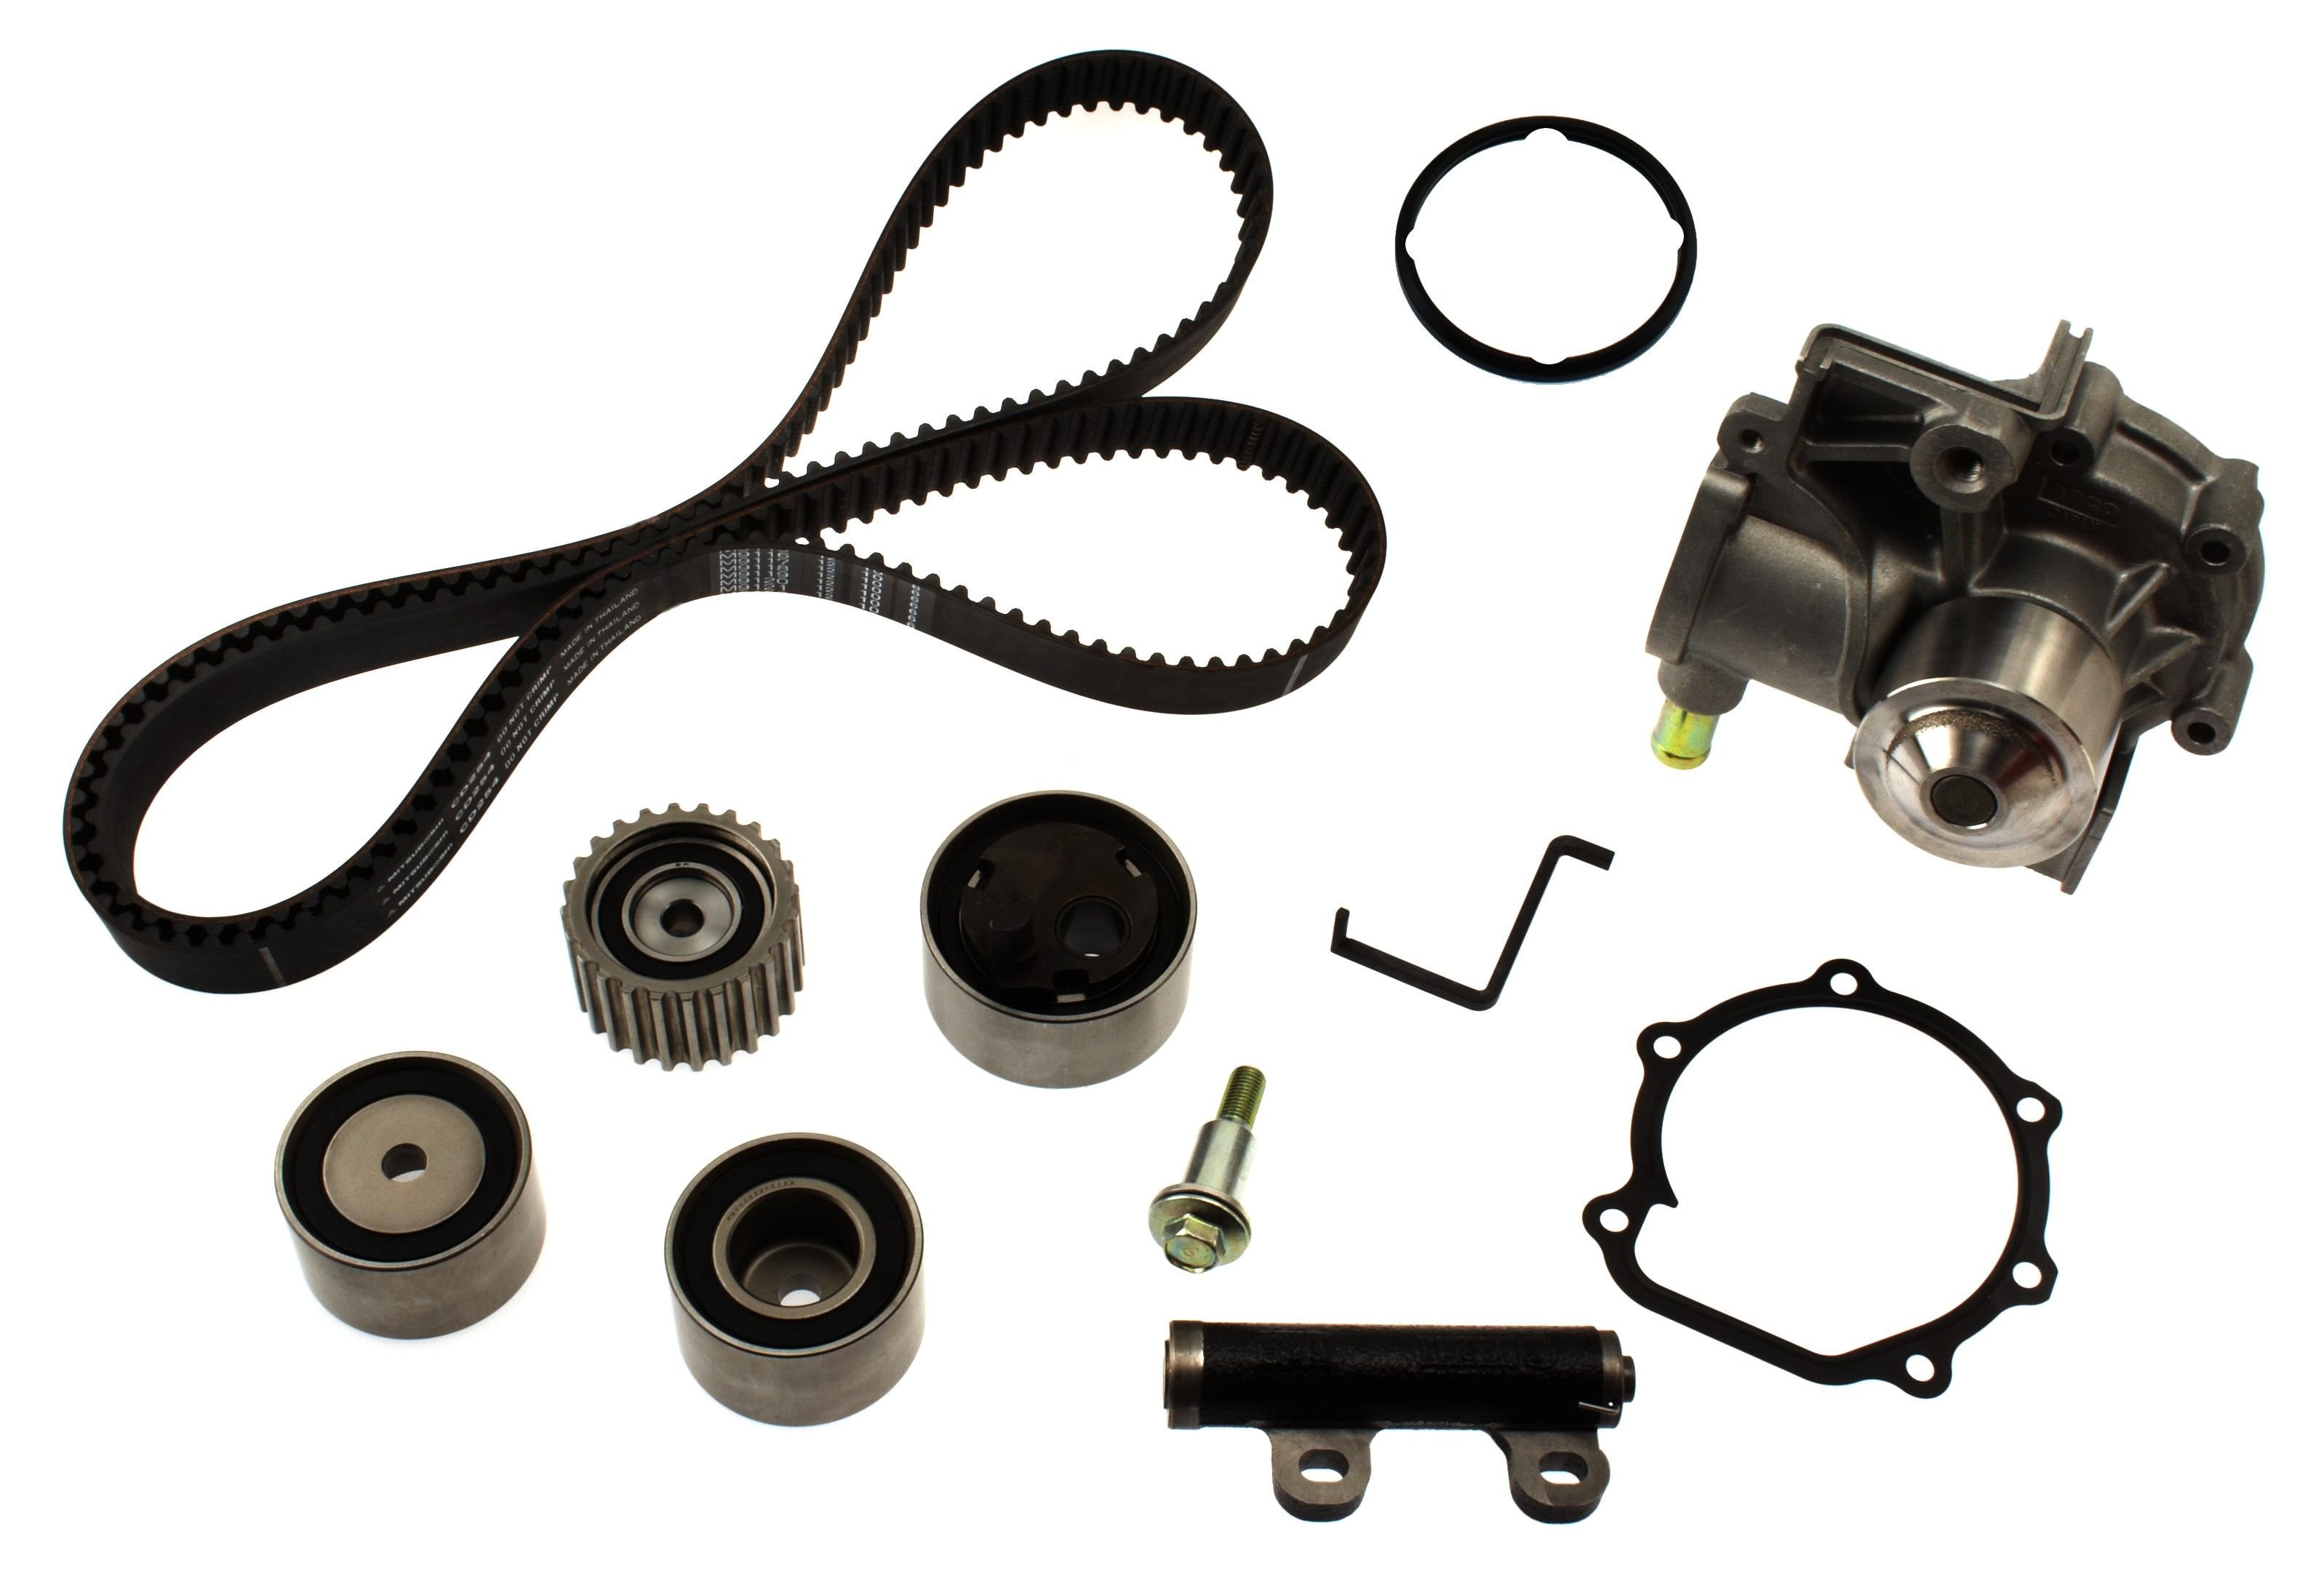 Subaru Legacy Engine Timing Belt Kit With Water Pump Replacement B4 Diagram 1990 4 Cyl 22l Aisin Tkf 003